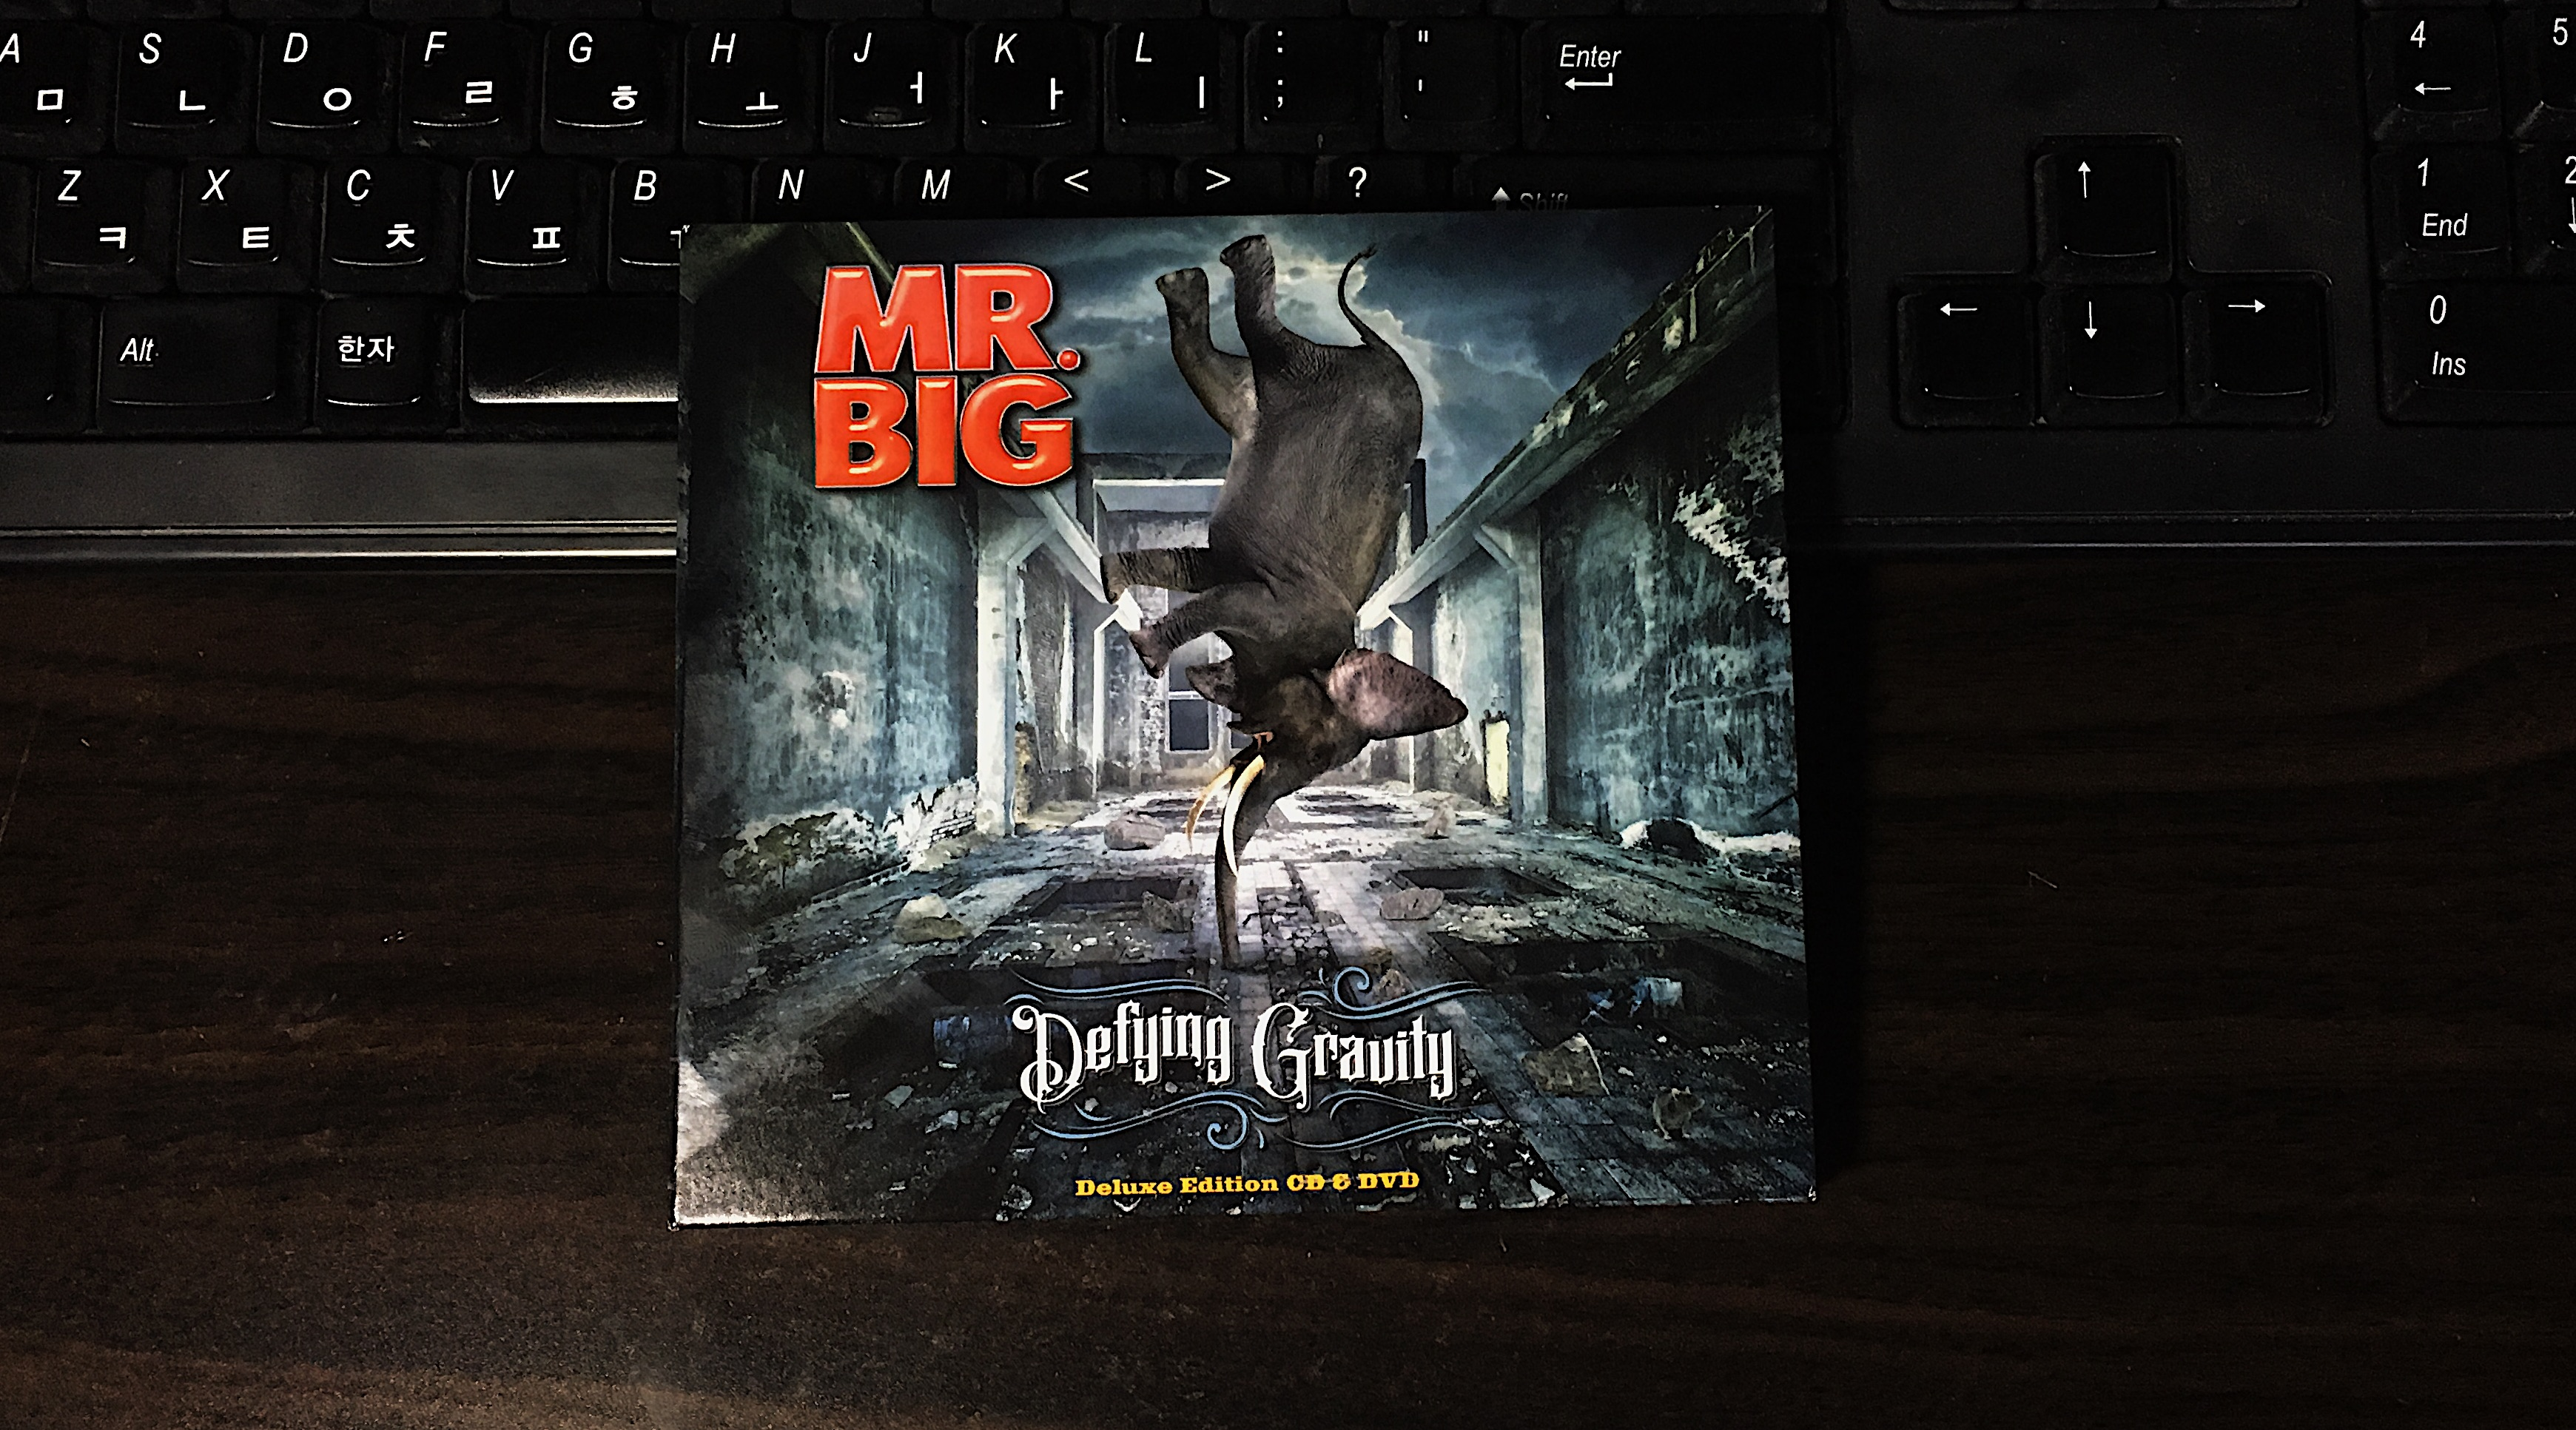 Defying Gravity - Mr. Big / 2017